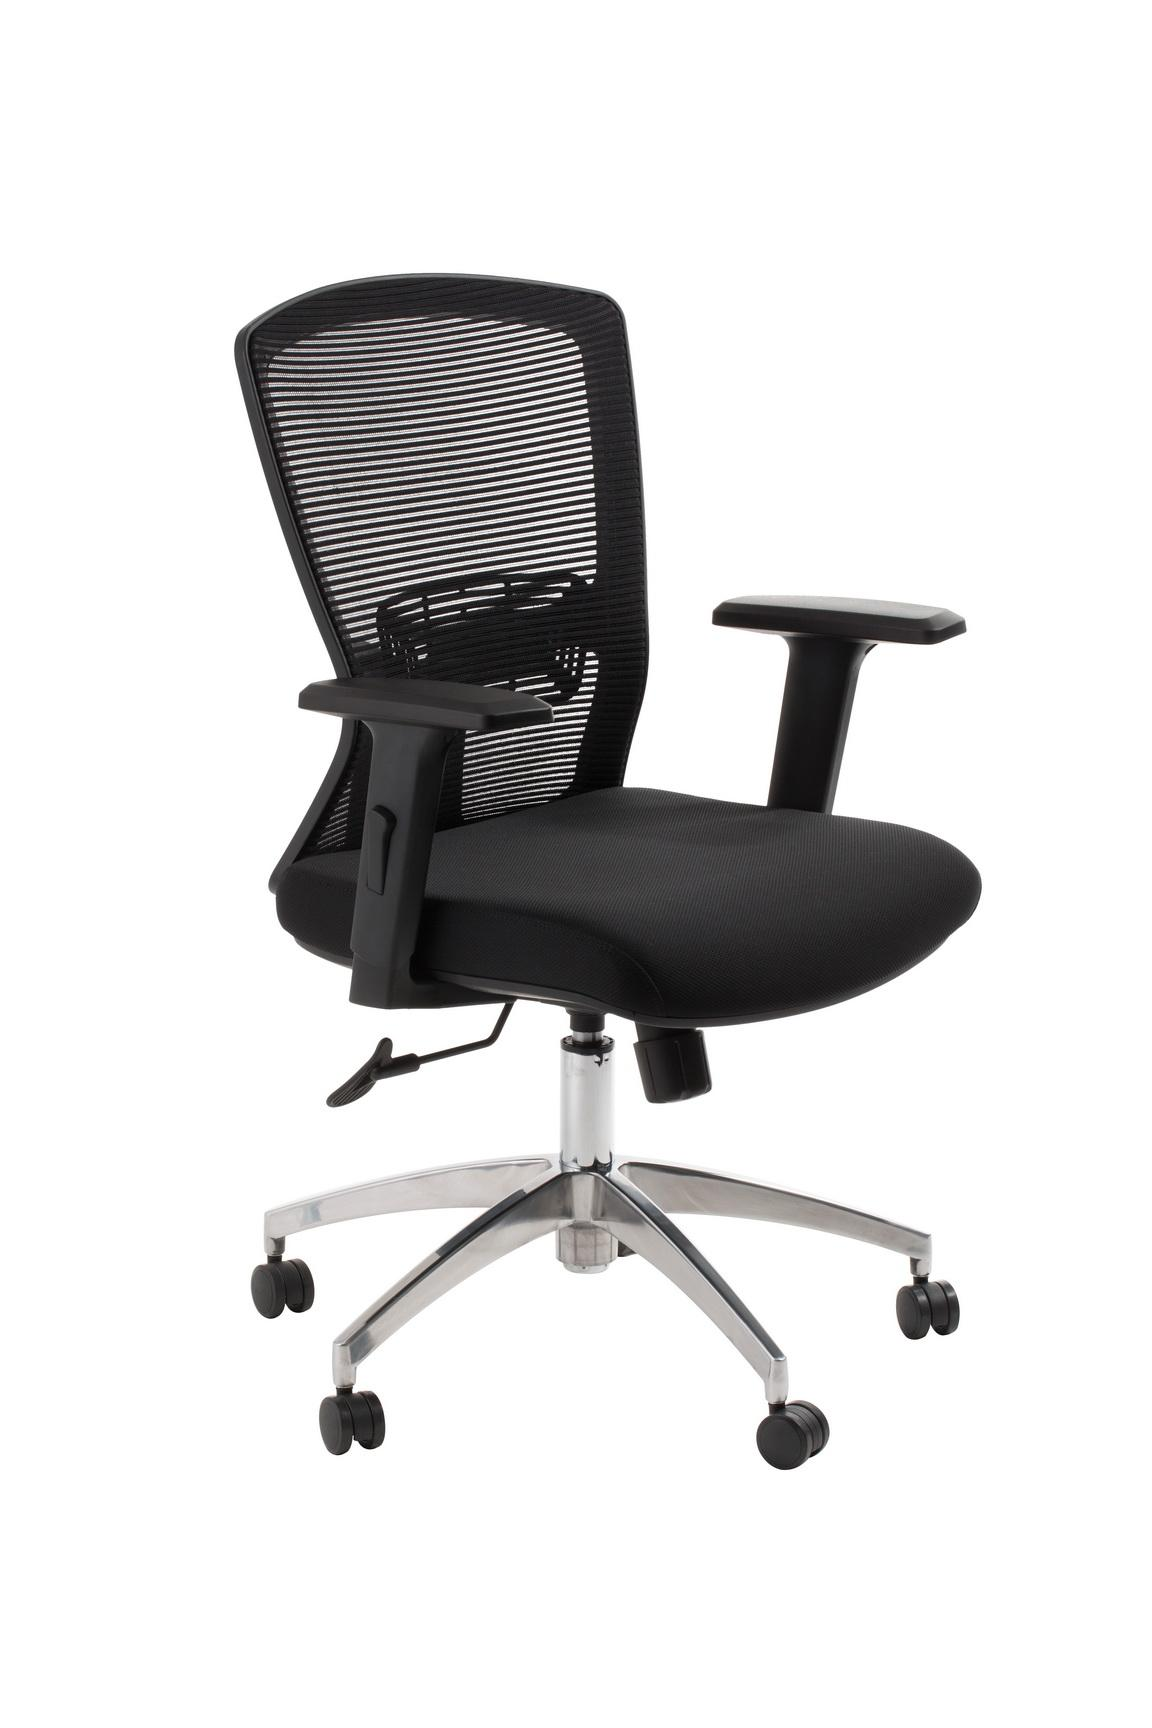 Western Office Furniture Store Office Furnitures